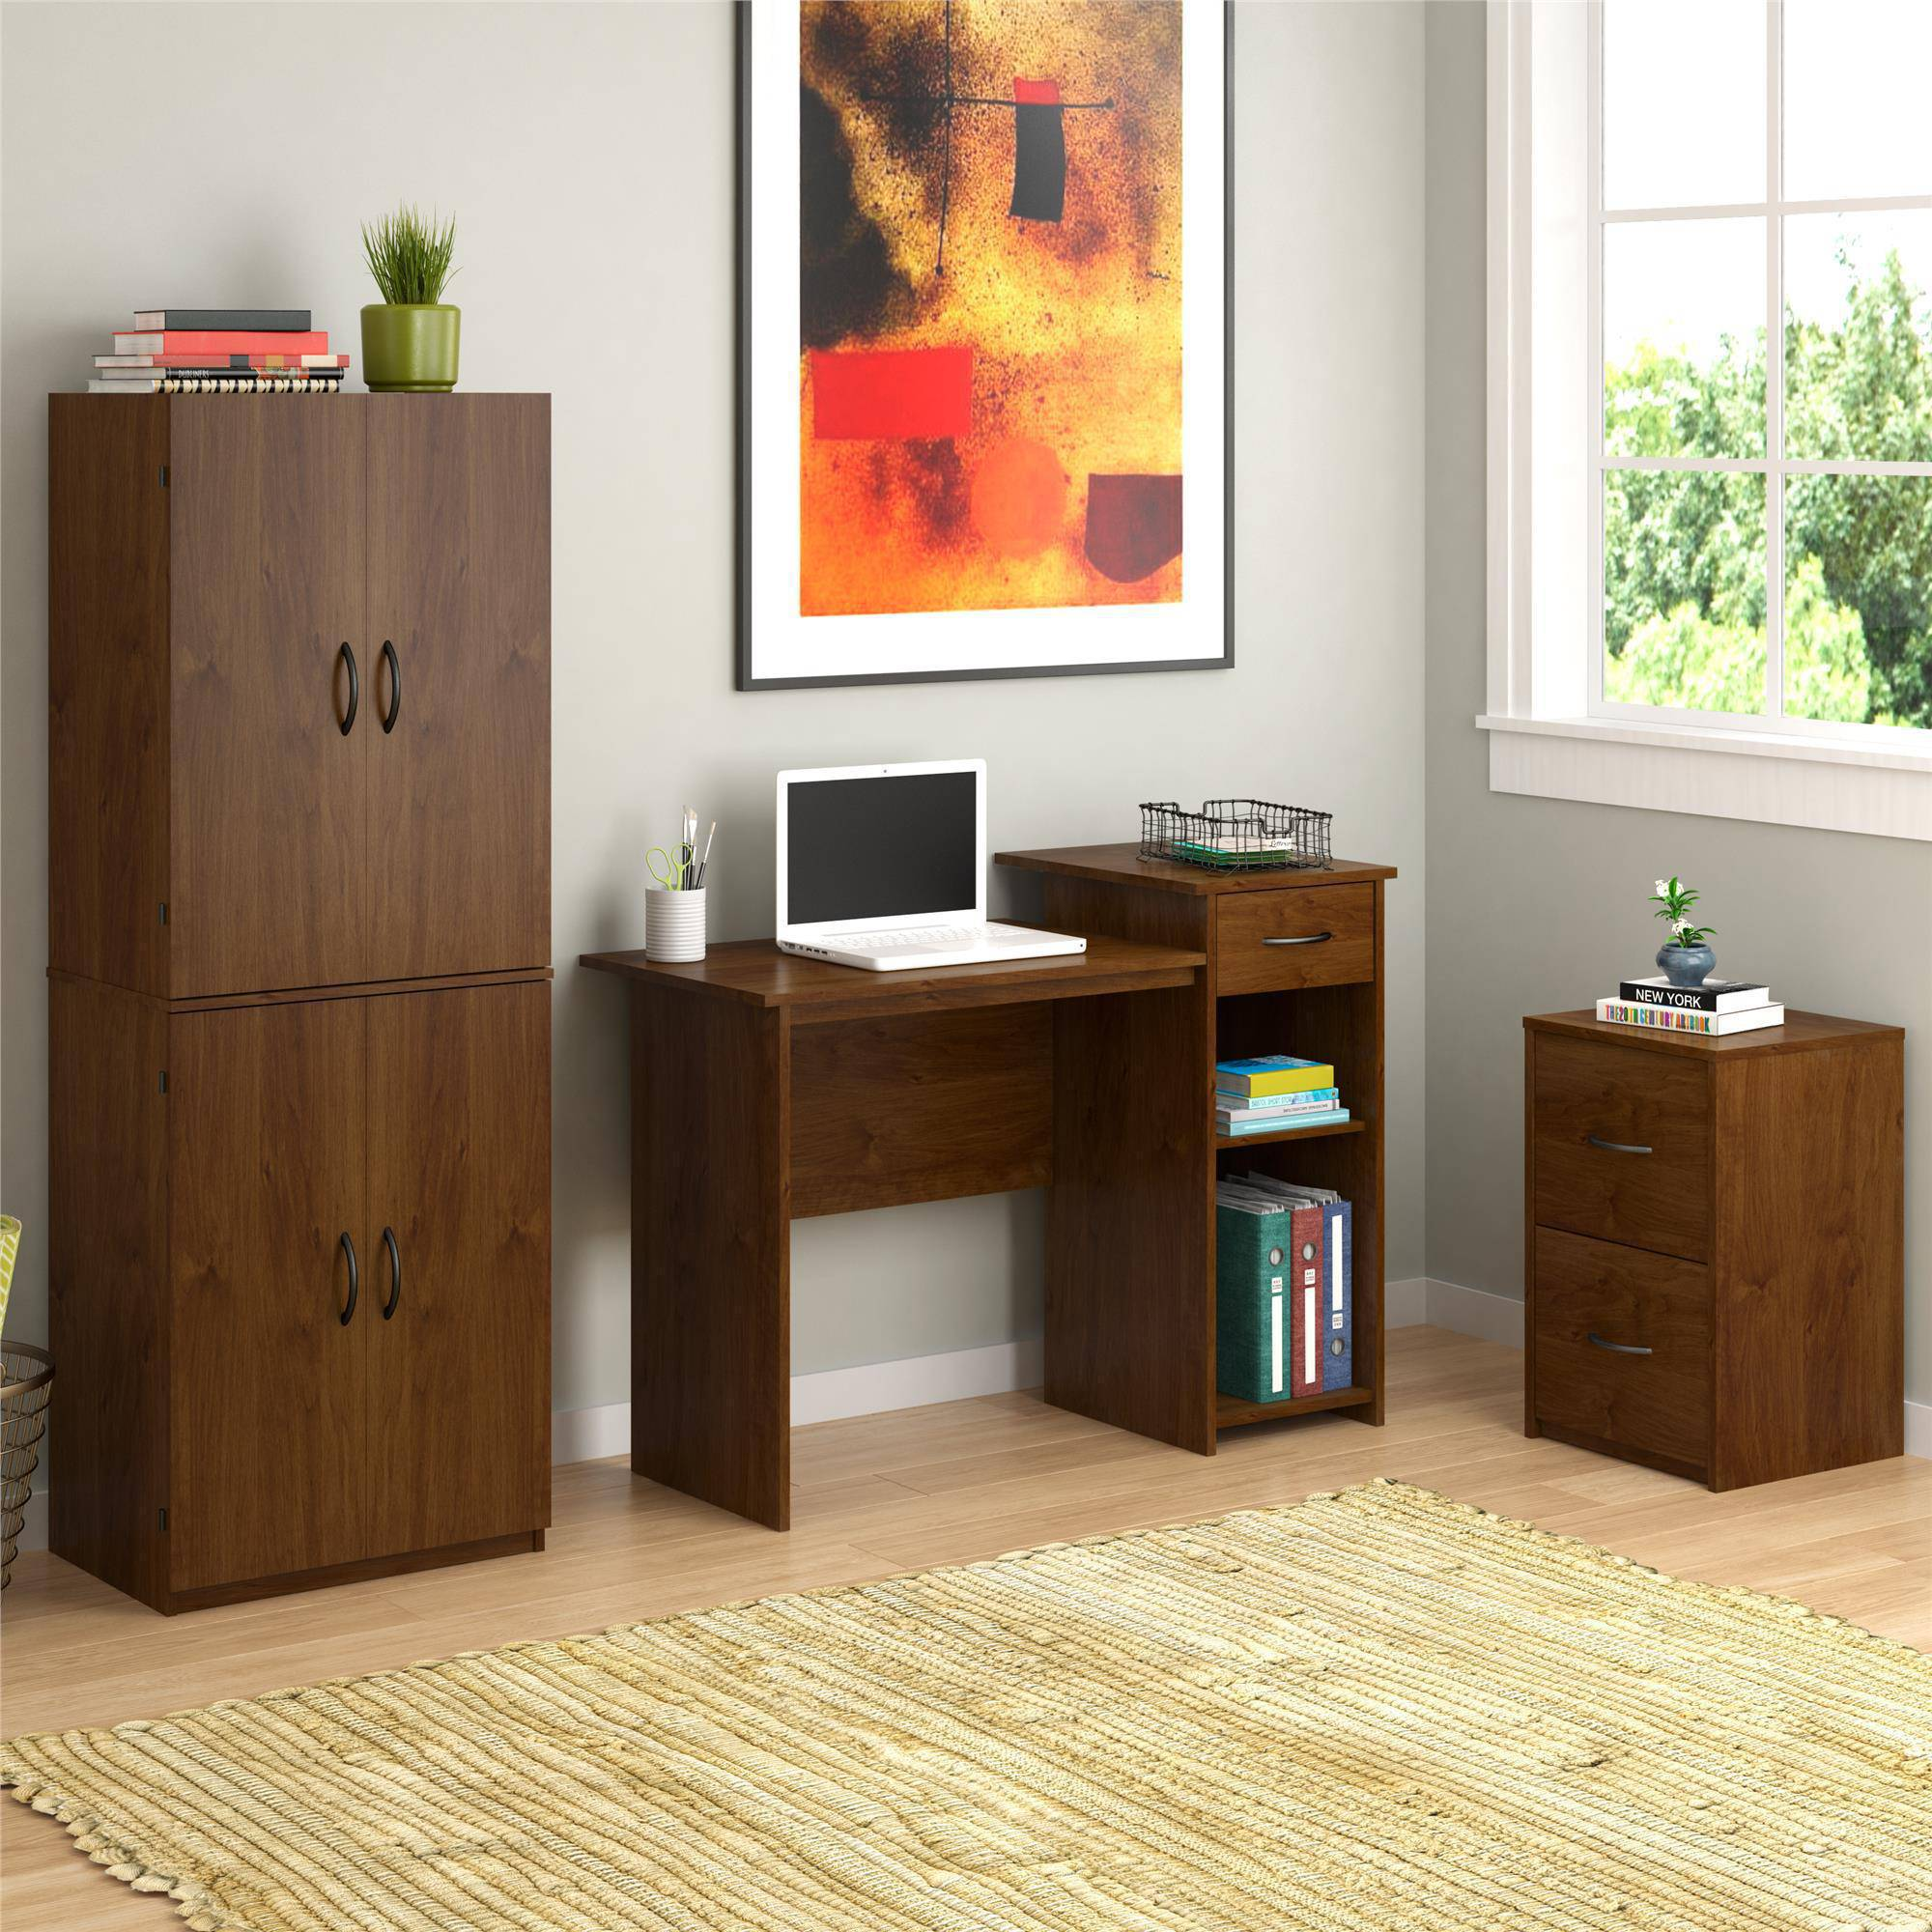 Superieur ... Multiple Finishes Mainstays Student Desk With Easy Glide Drawer, Multiple  Finishes ...